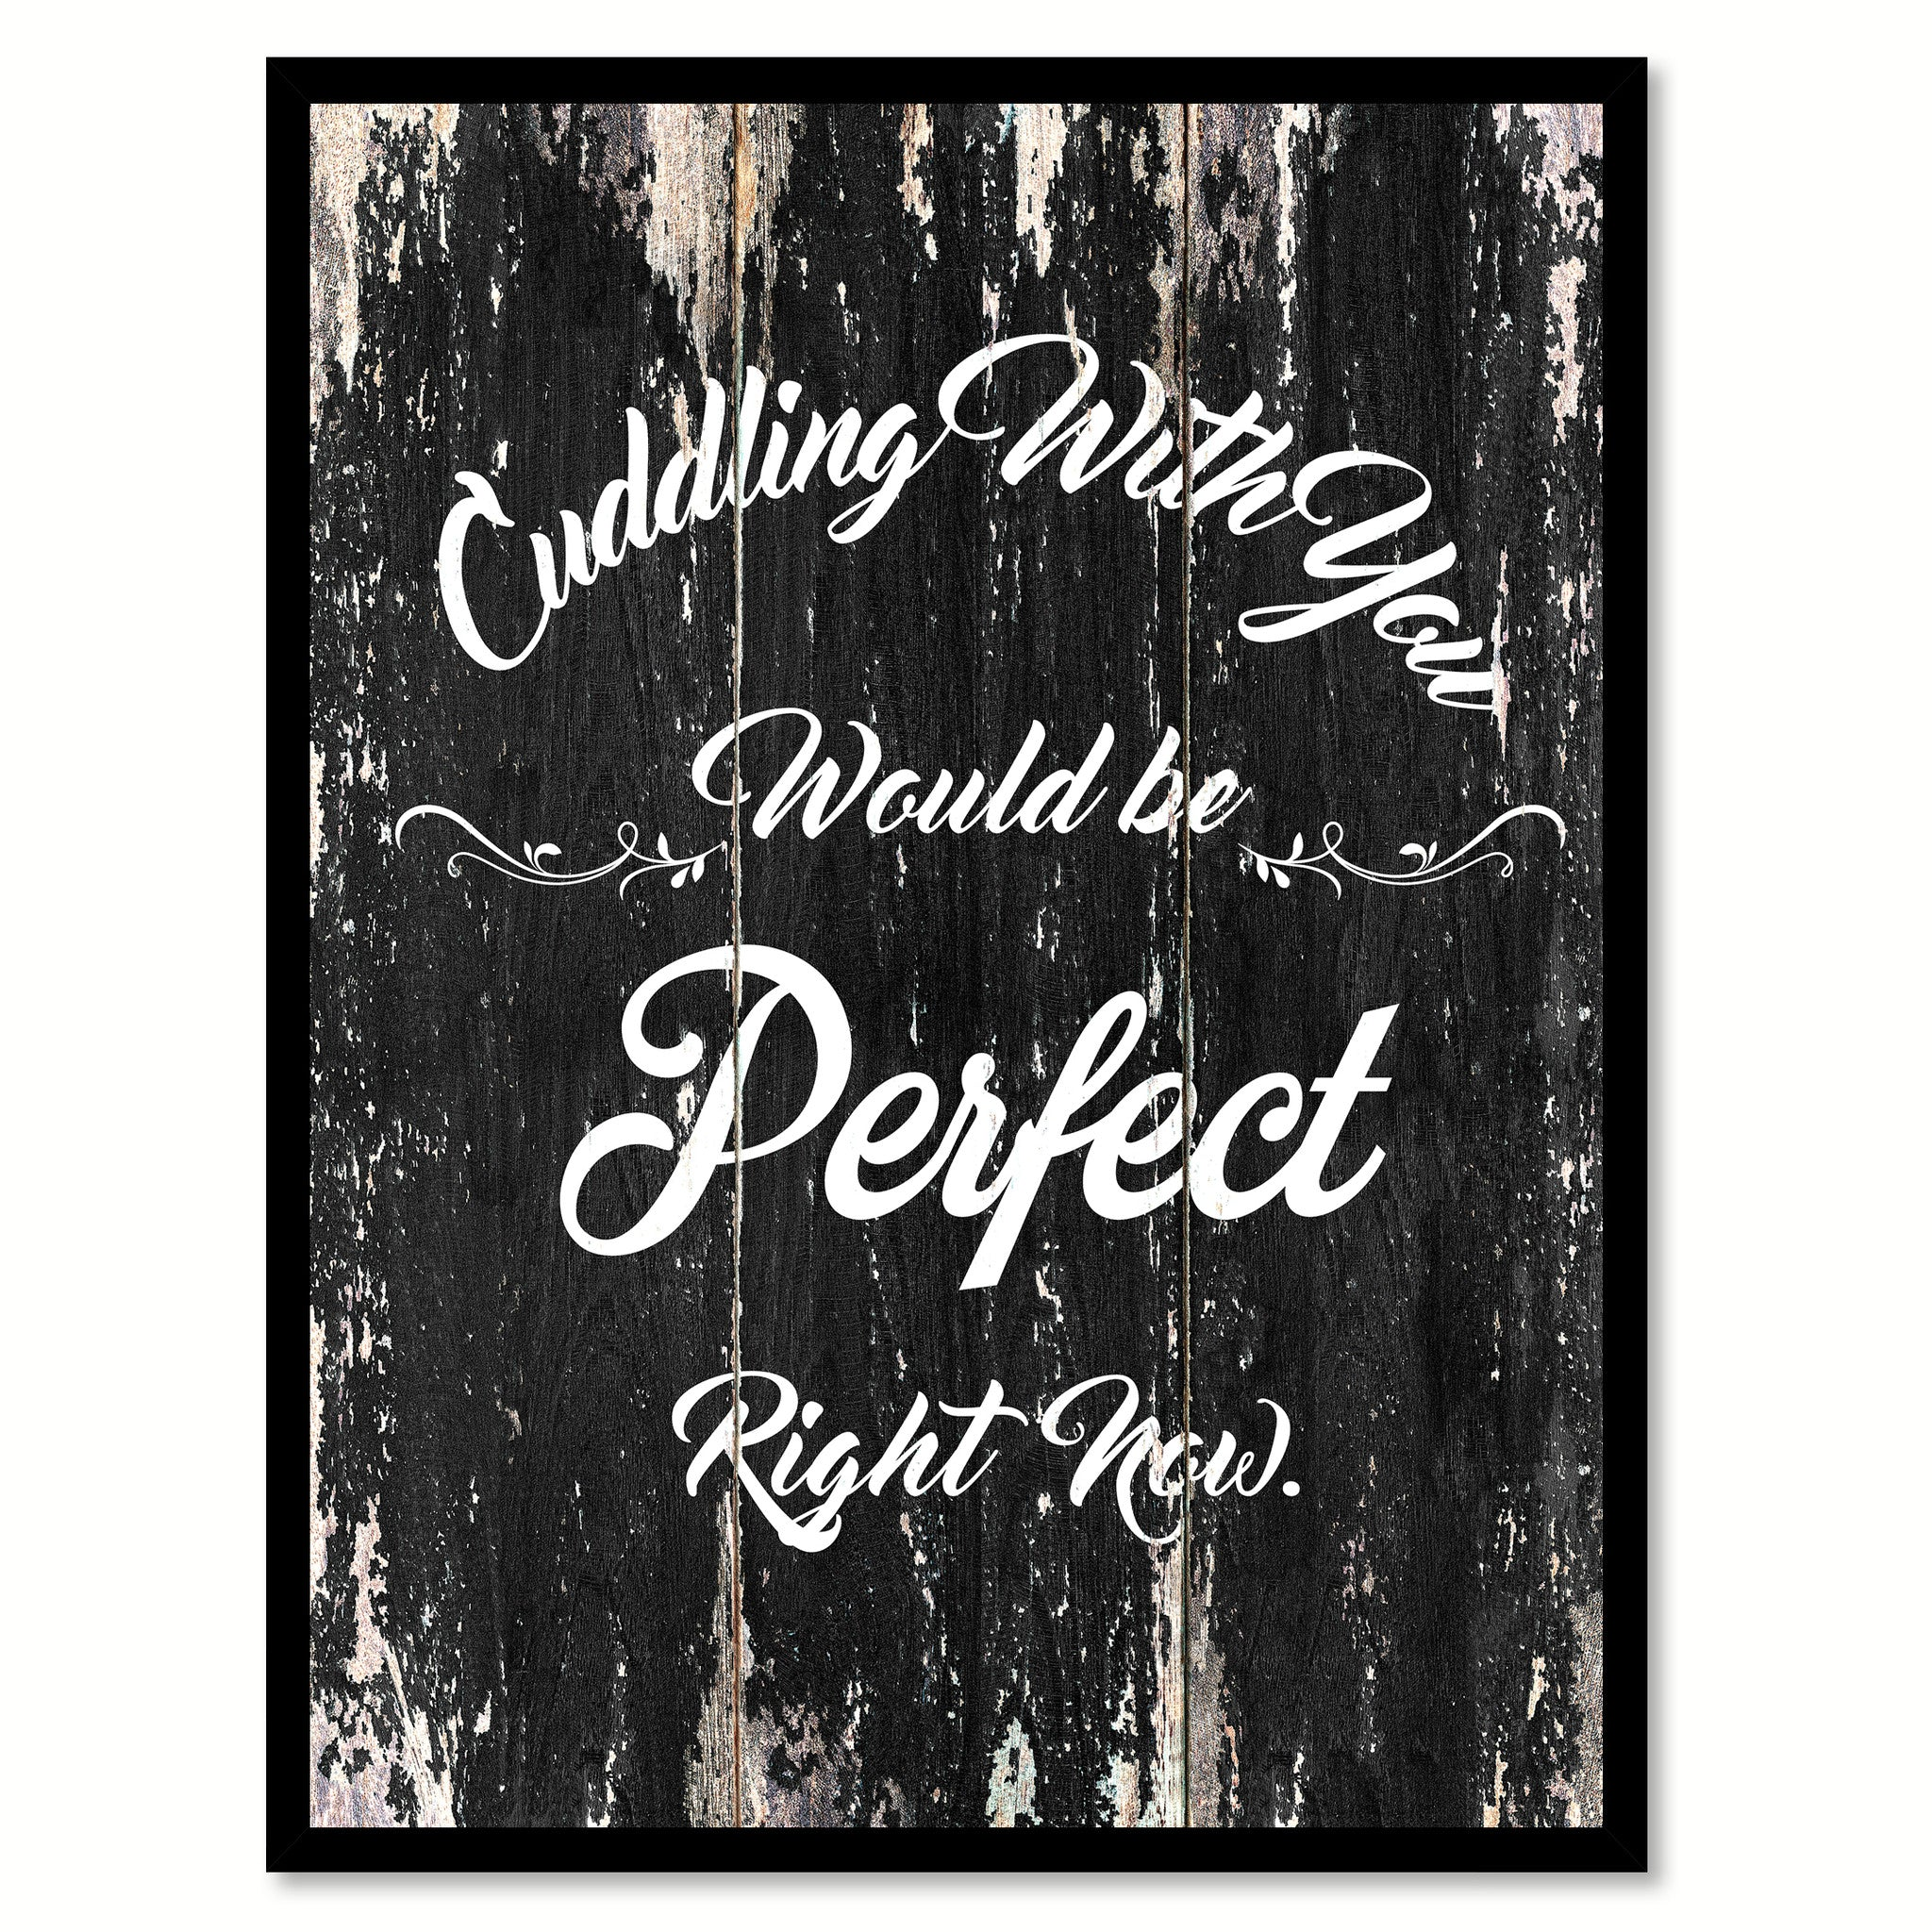 Cuddling with You would be perfect right now Motivational Quote Saying Canvas Print with Picture Frame Home Decor Wall Art